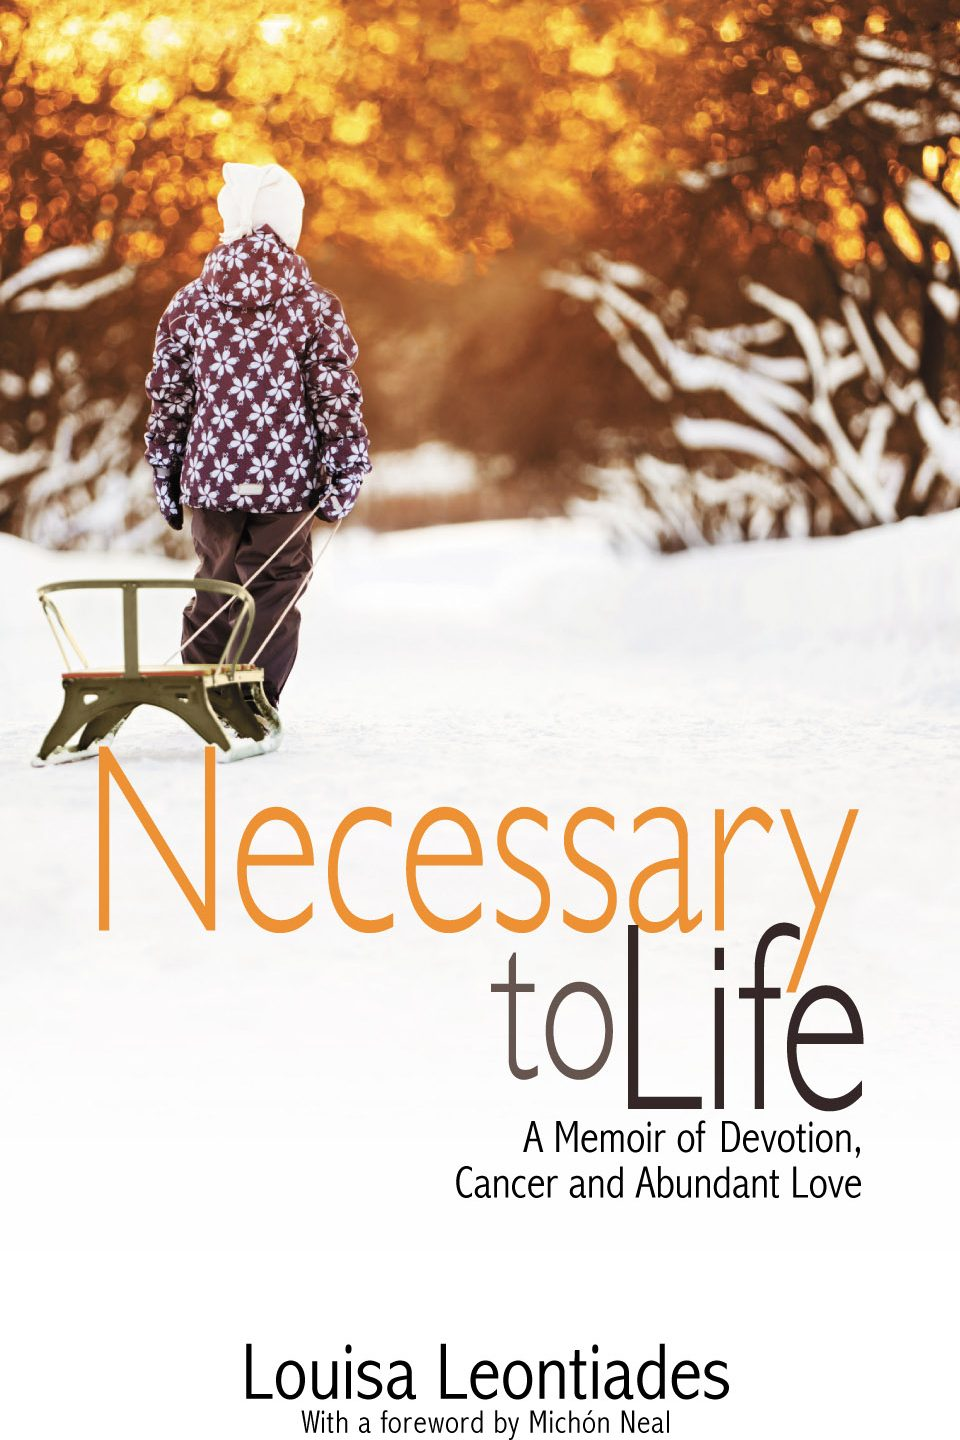 Cover art of the book Necessary to Life by Louisa Leontiades